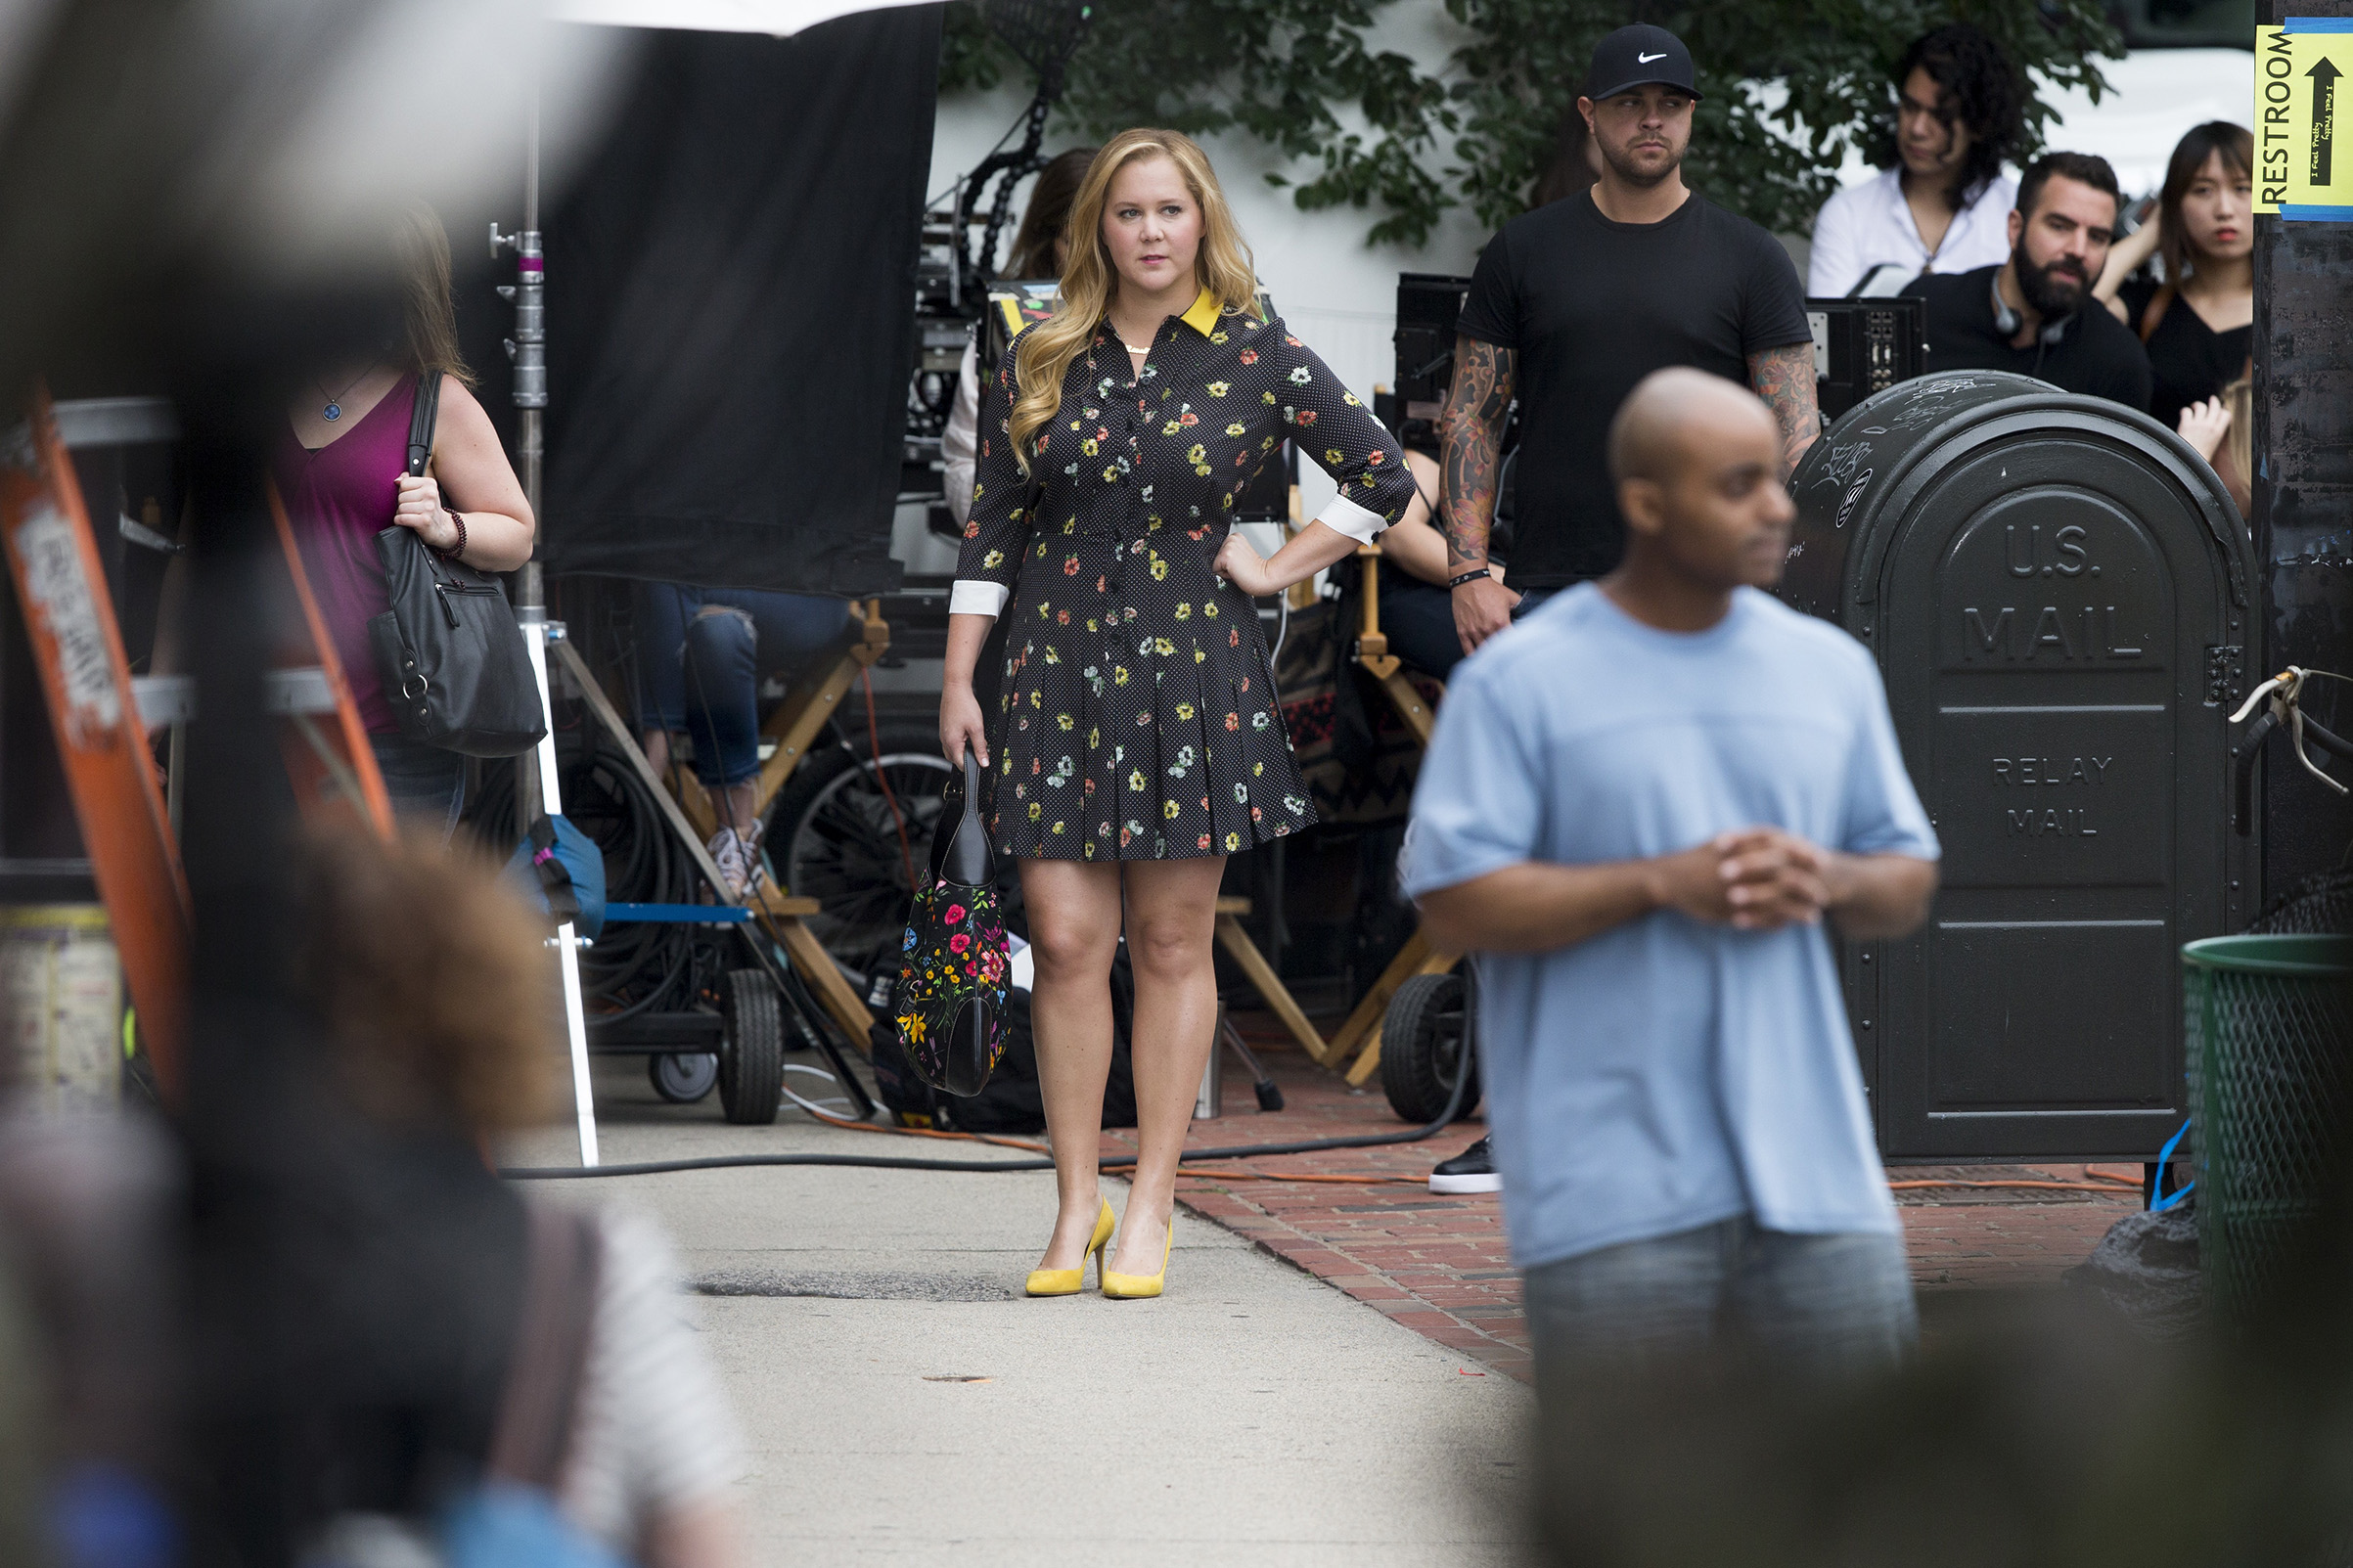 Amy Schumer on the set of a new movie filming on Tremont Street in Boston on Aug. 7, 2017.